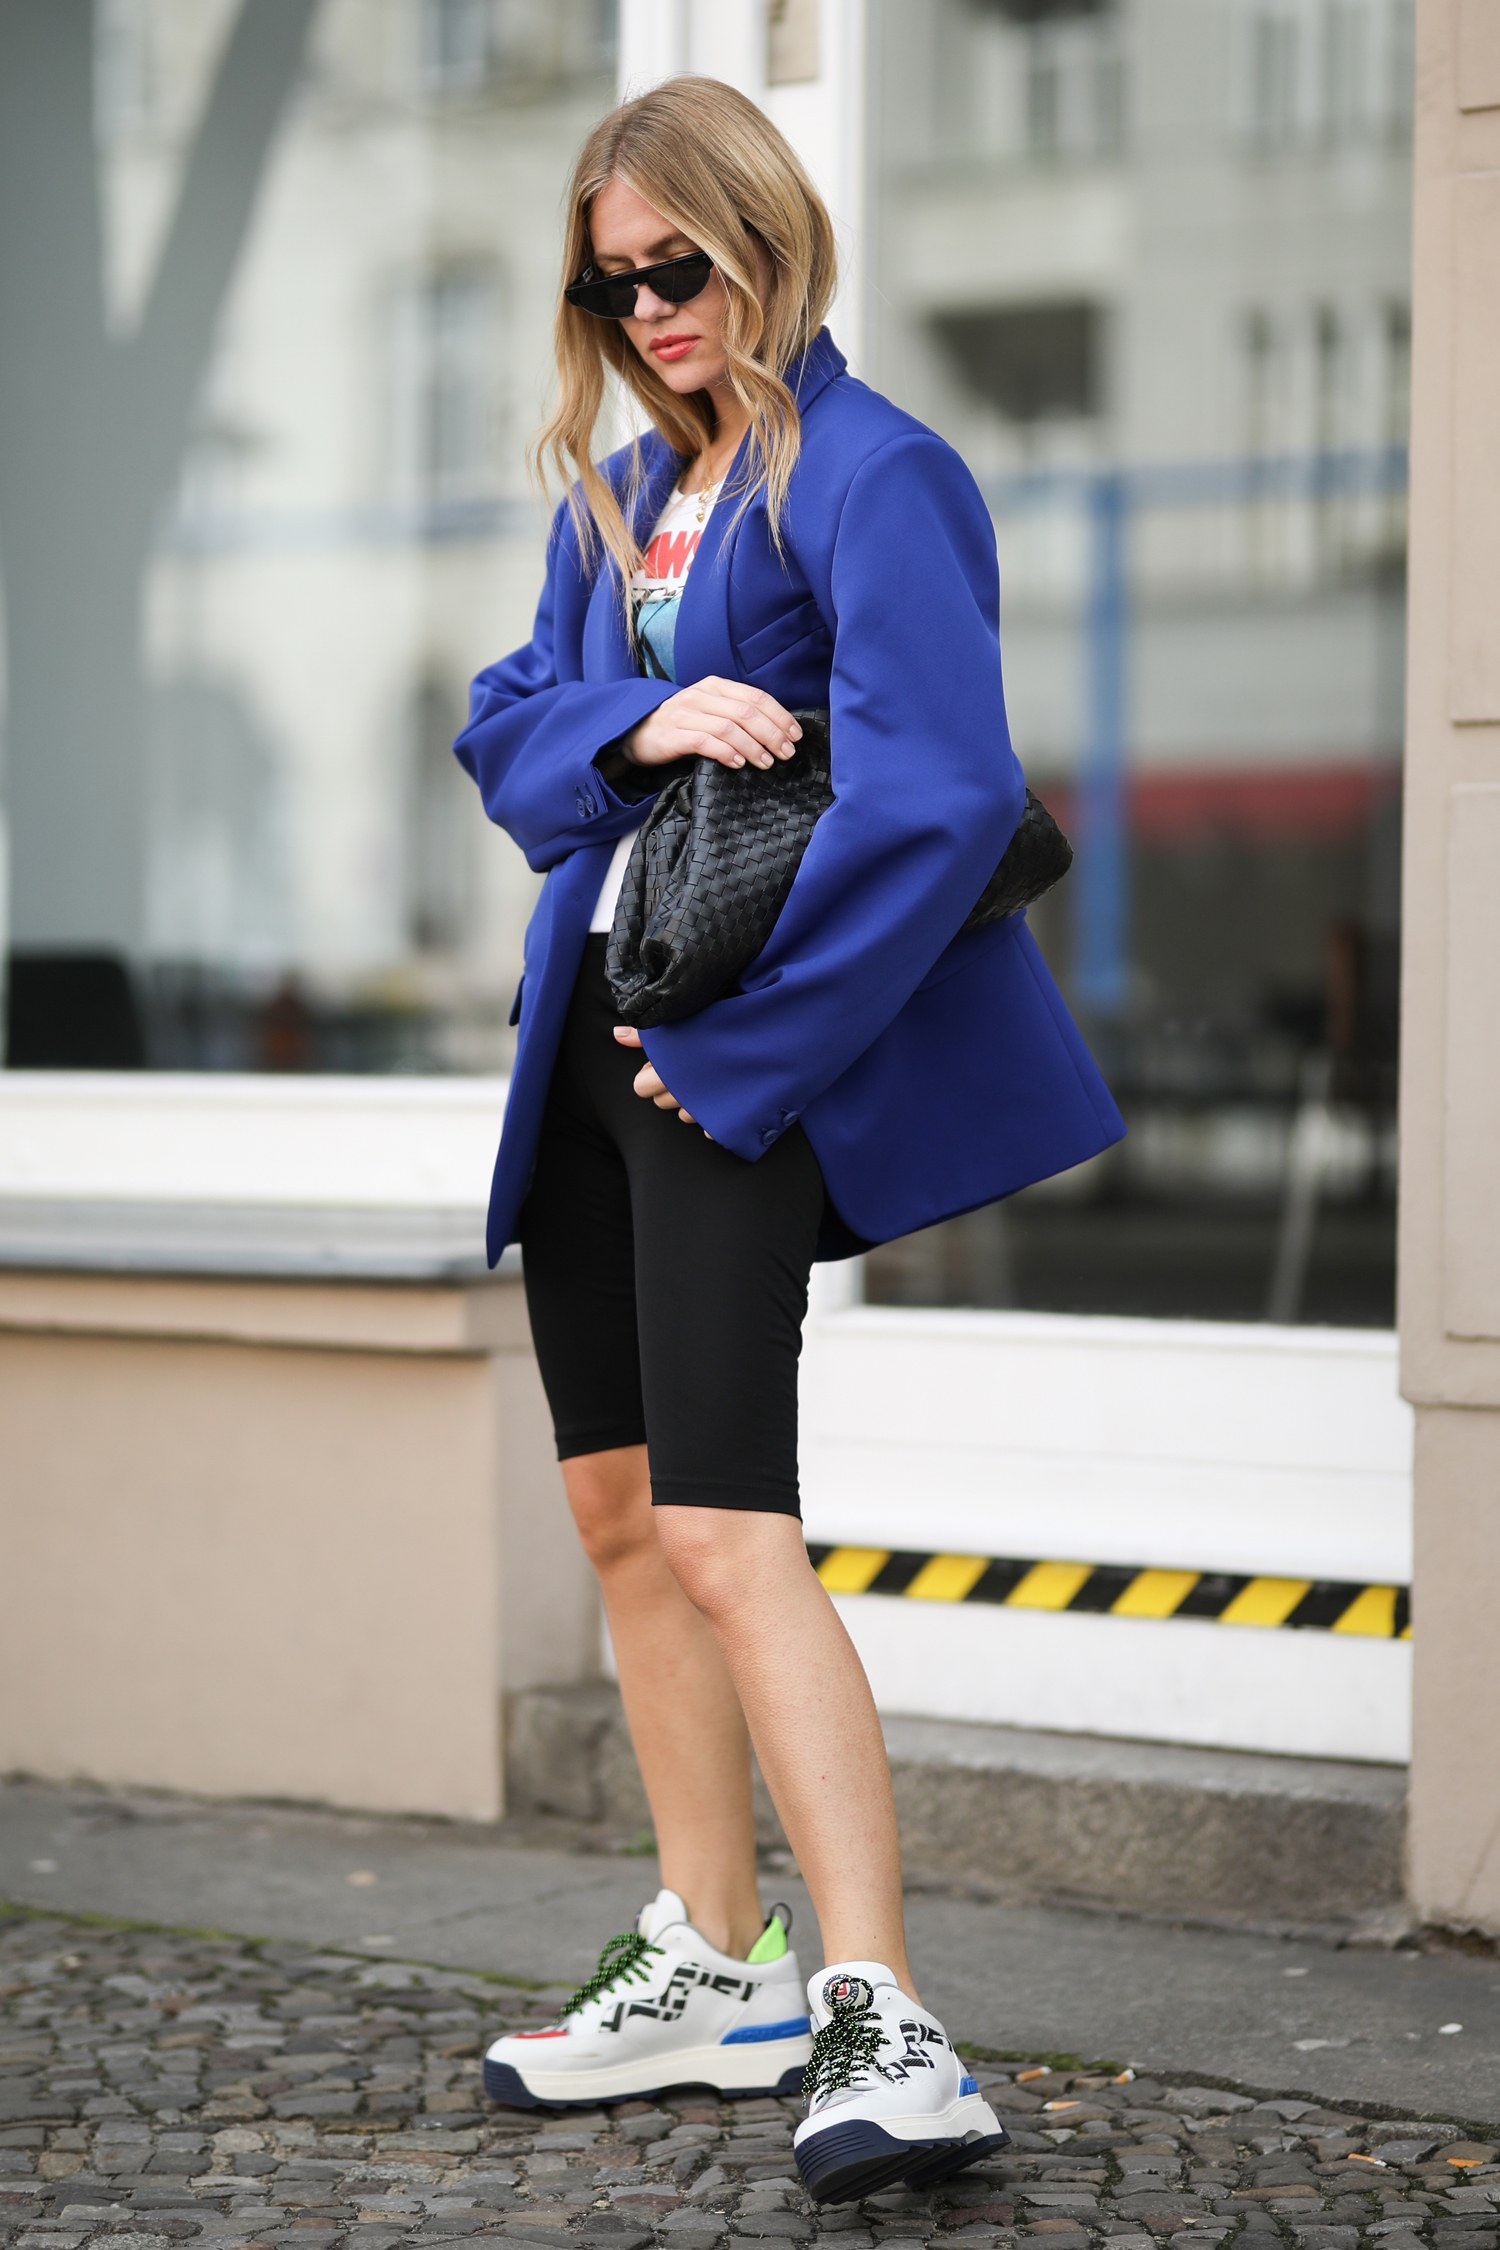 woman wearing a white graphic tshirt under a purple blazer and black bike shorts with sneakers